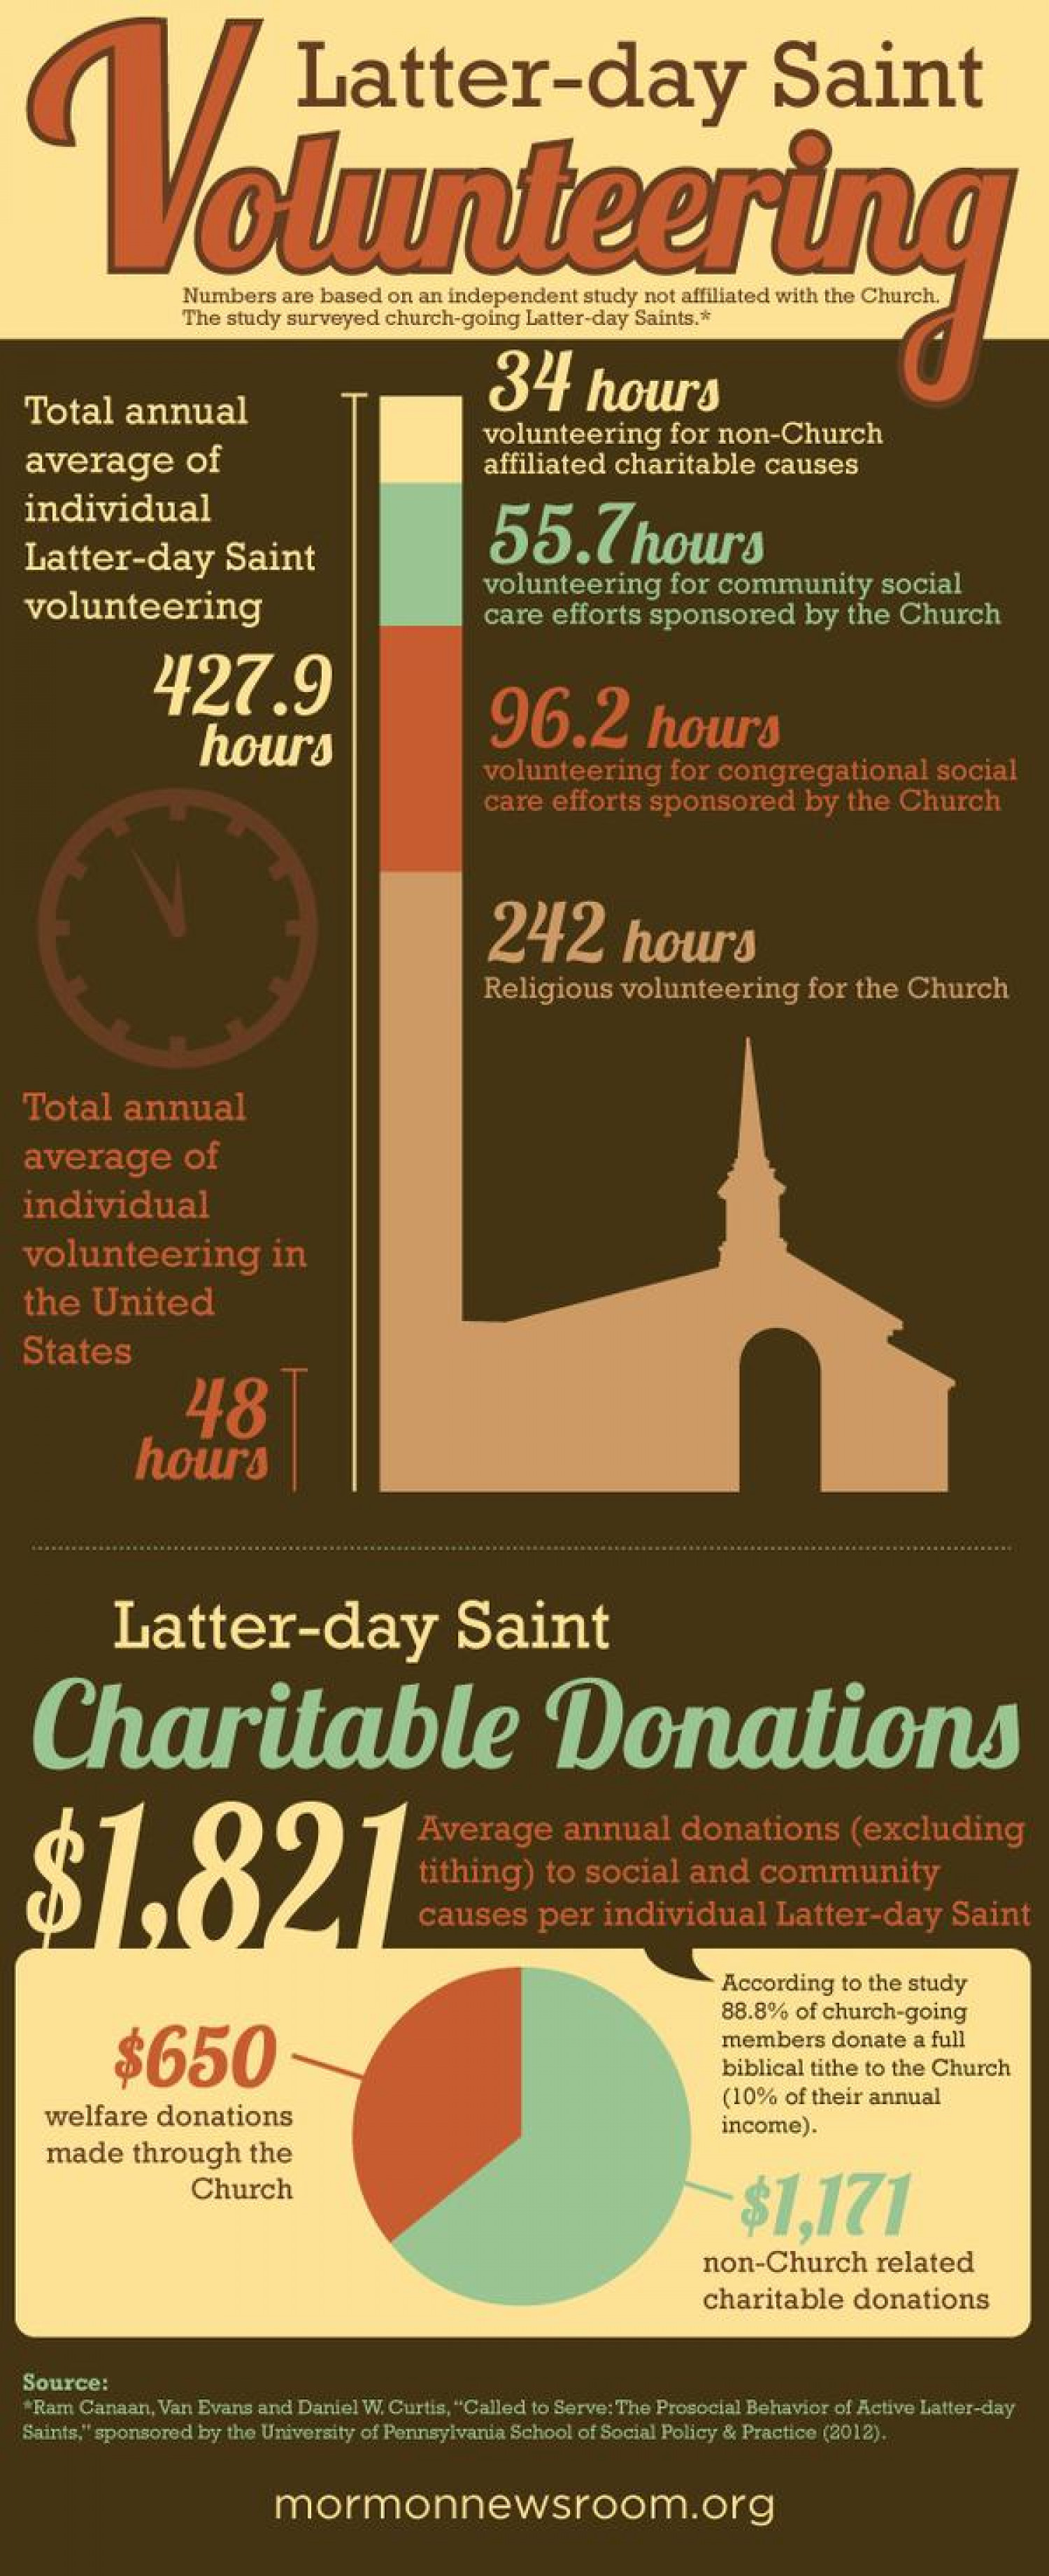 Mormon Volunteerism Highlighted in New Study Infographic